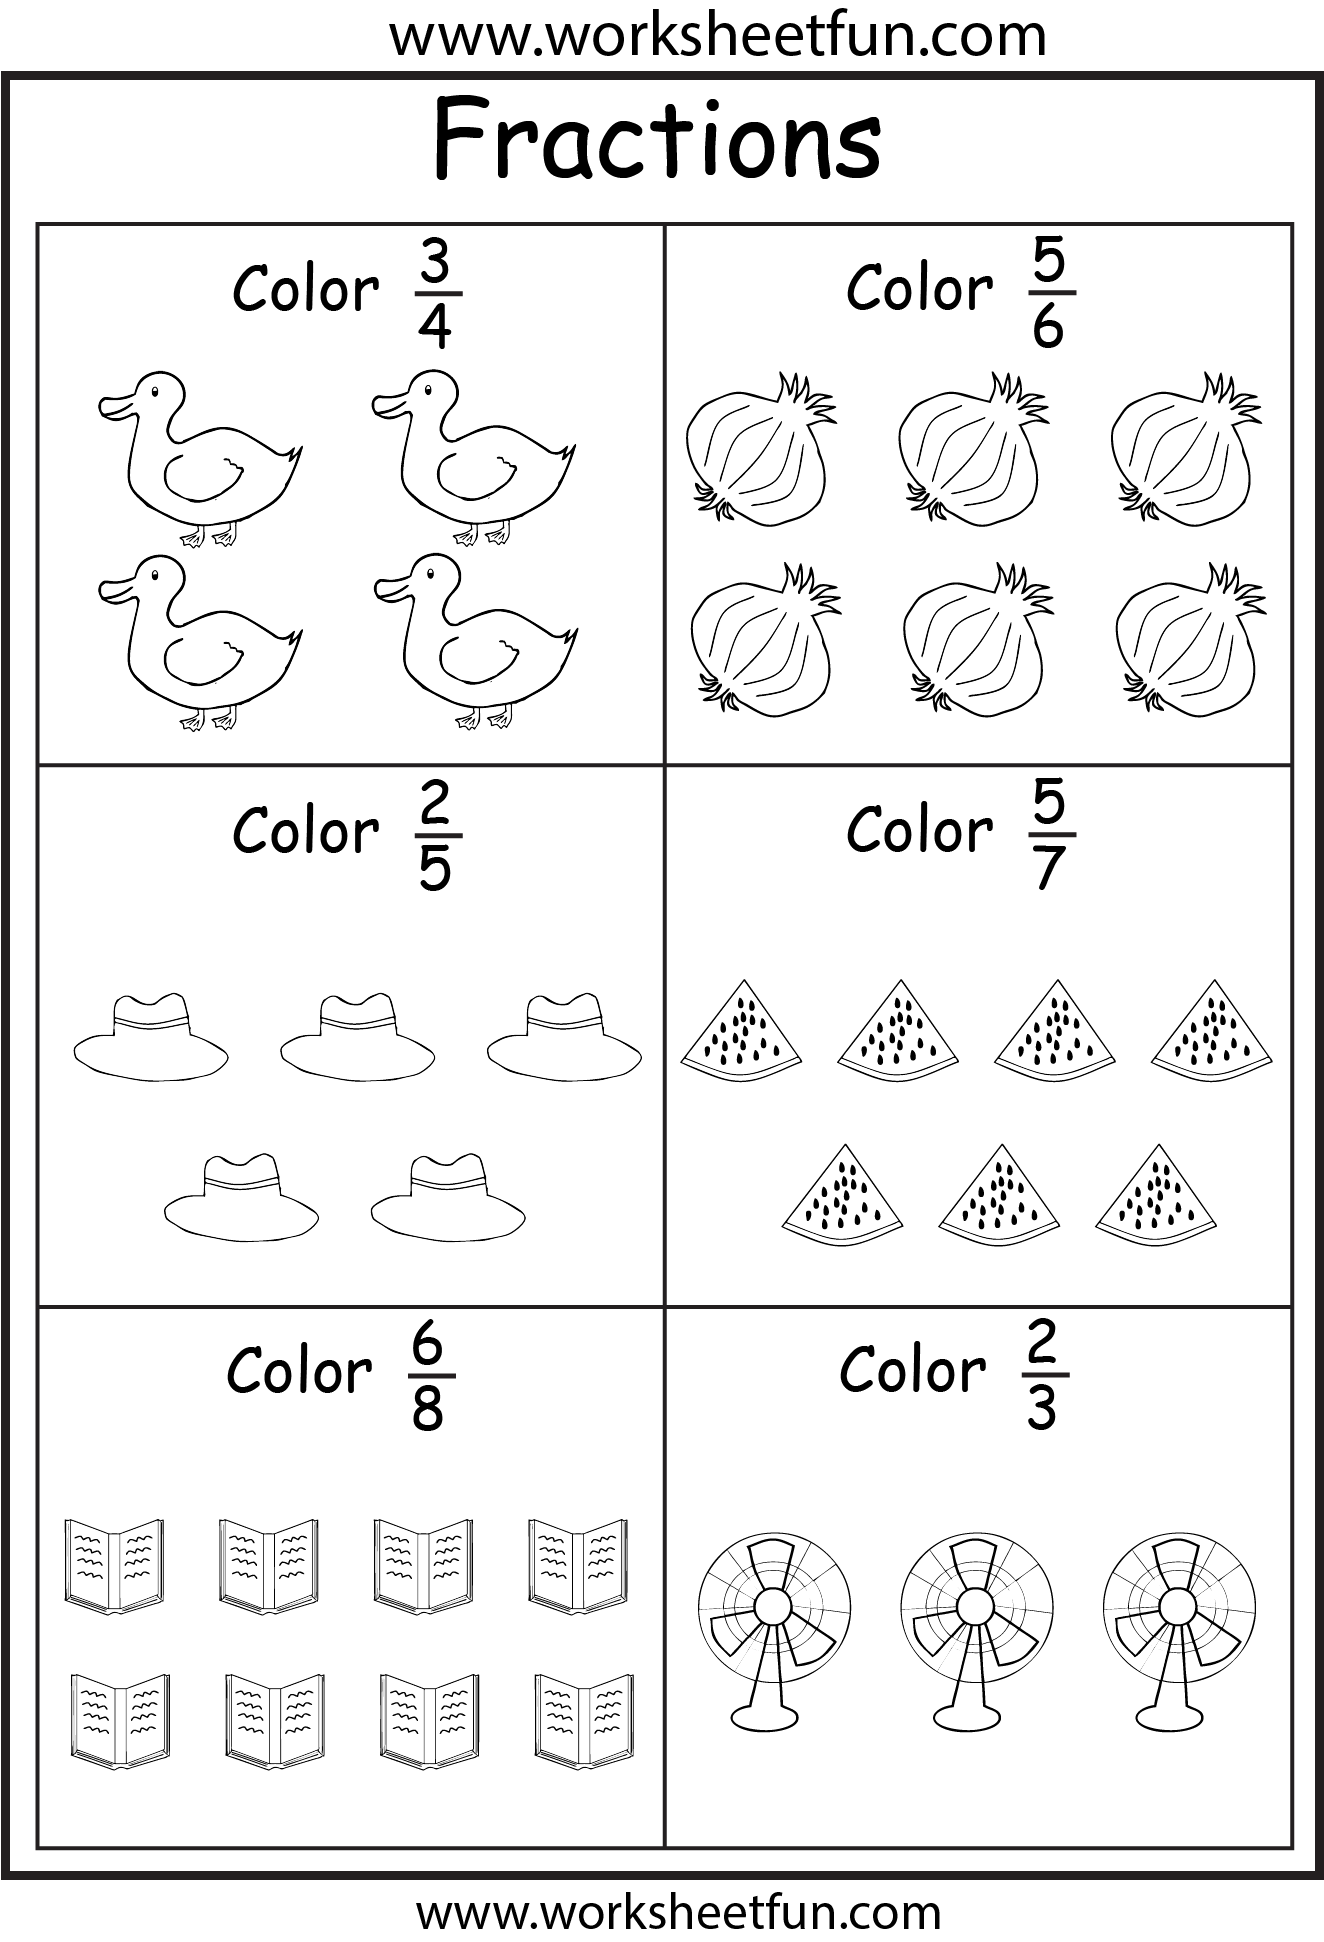 fractions w/ objects | School | Pinterest | Fractions ...fractions w ...